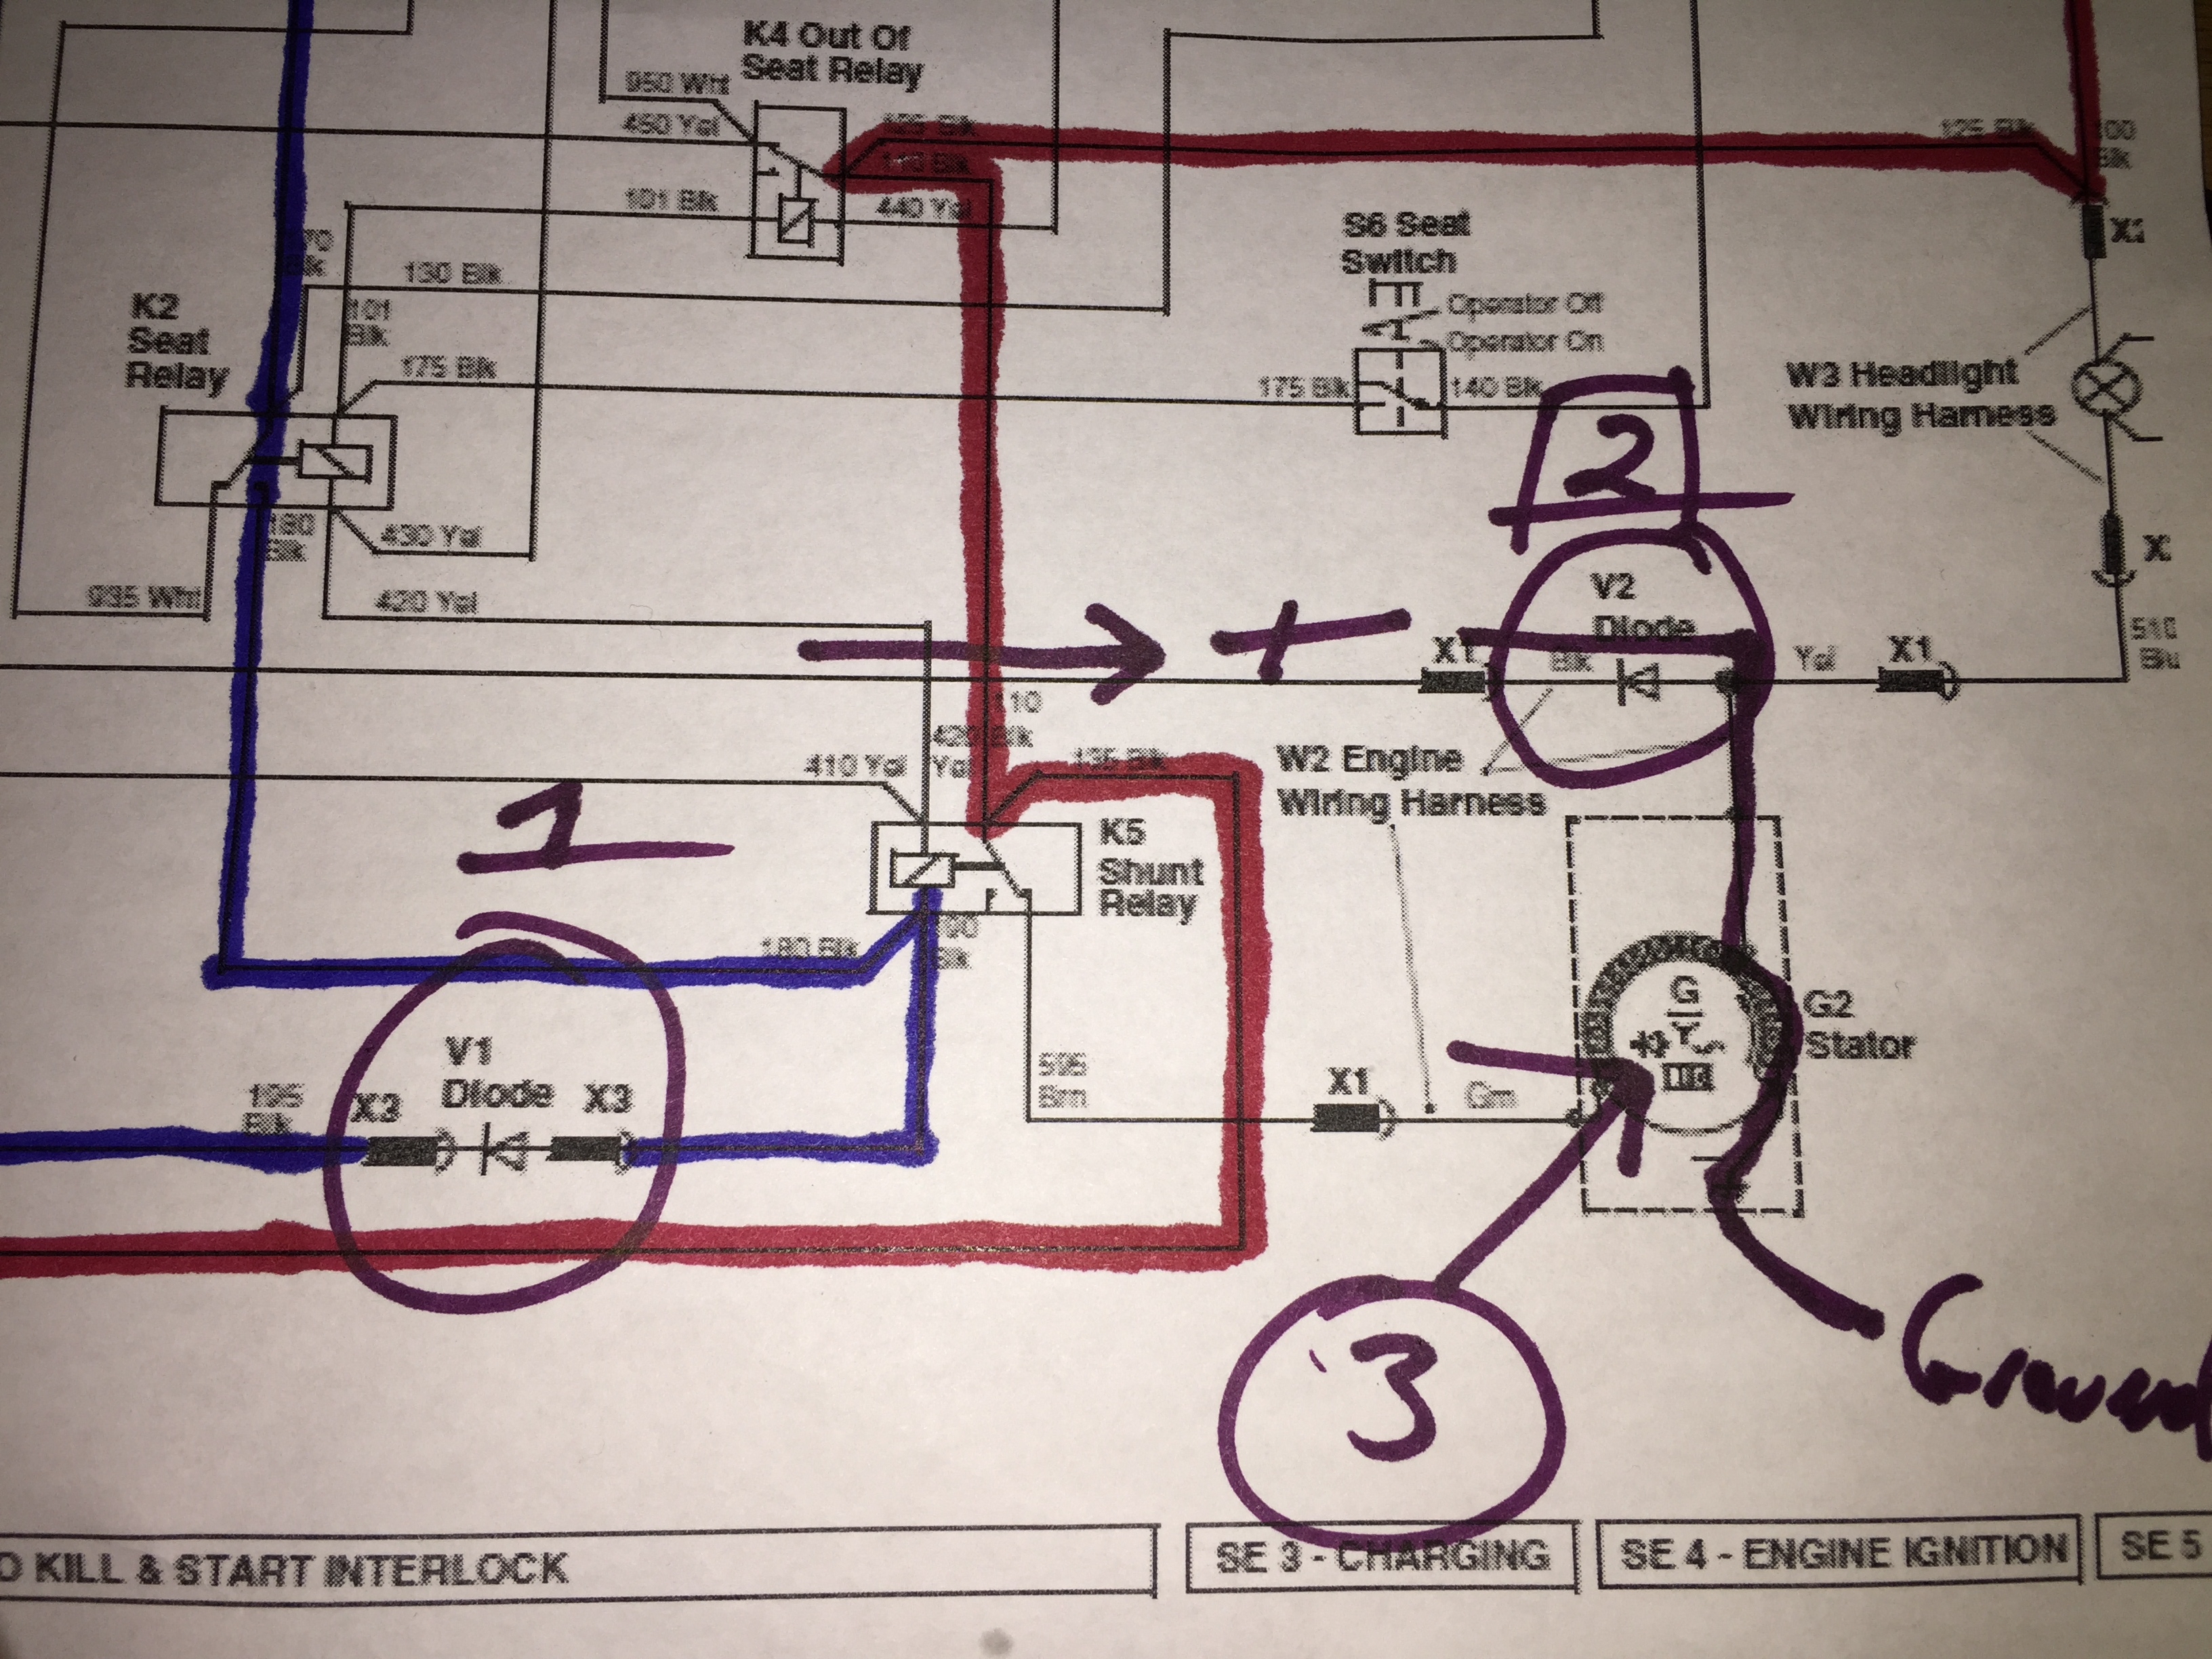 LT155 electrical issue-- help! | Page 2 | My Tractor Forum on john deere f911 wiring diagram, john deere f925 wiring diagram, john deere 145 wiring-diagram, john deere z225 wiring-diagram, john deere 325 wiring-diagram, john deere x324 wiring diagram, john deere 345 wiring-diagram, john deere 133 wiring-diagram, john deere gt245 wiring diagram, john deere gx335 wiring diagram, john deere 4430 wiring-diagram, john deere lx280 wiring diagram, john deere lx279 wiring diagram, john deere la115 wiring diagram, john deere la140 wiring diagram, john deere la125 wiring diagram, john deere ignition wiring diagram, john deere la120 wiring diagram, john deere mower wiring diagram, john deere 1020 wiring-diagram,